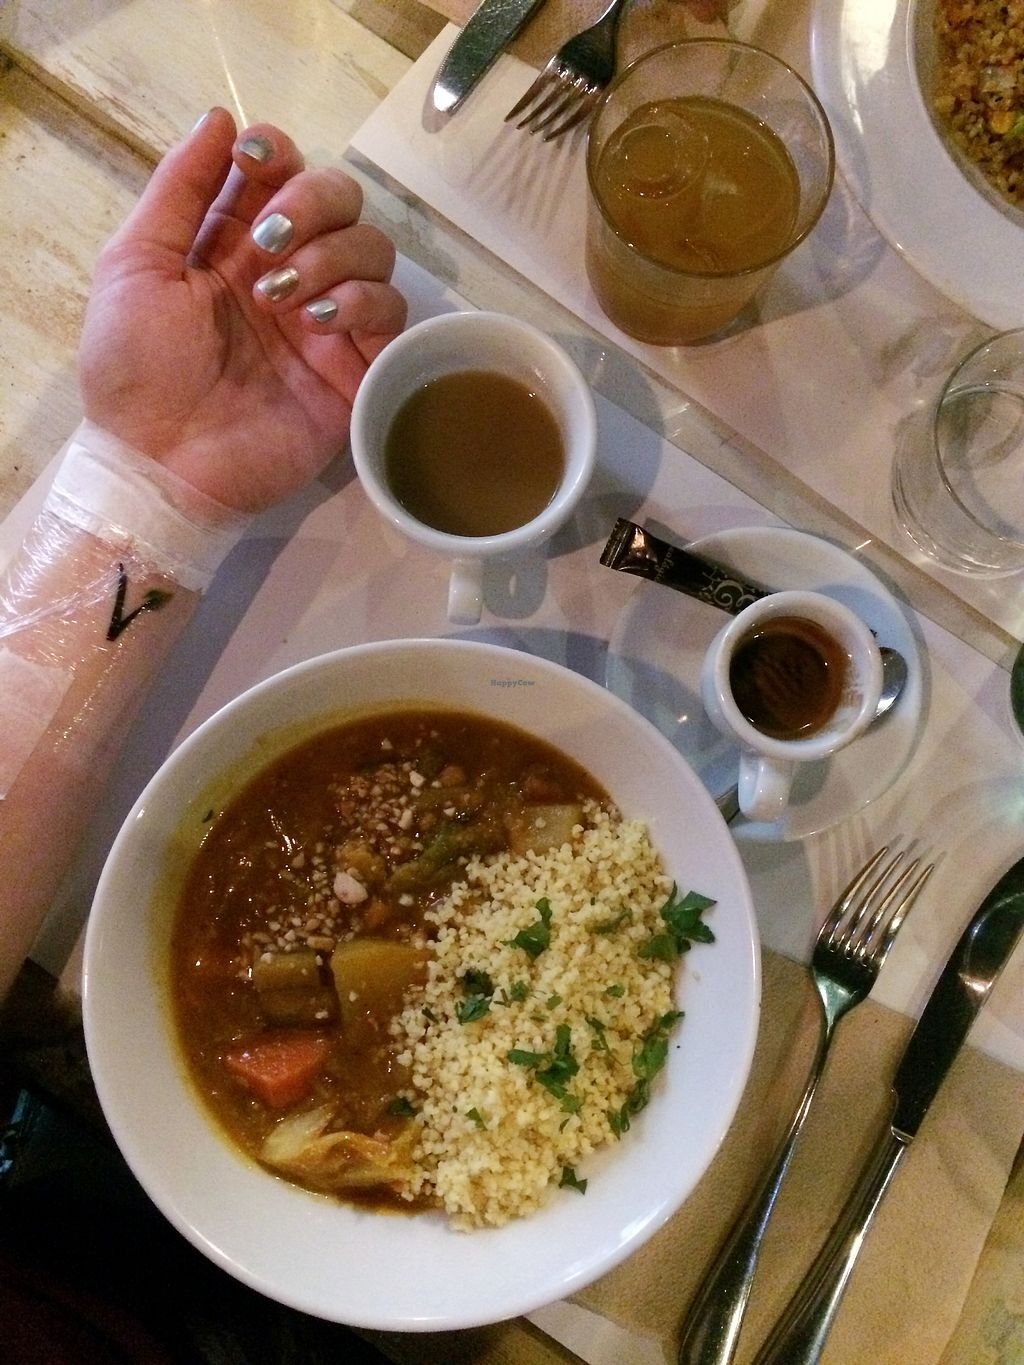 """Photo of VEGA  by <a href=""""/members/profile/LaurenSmith"""">LaurenSmith</a> <br/>A curry-esque dish, a DELICIOUS sopapilla in the top cup, an espresso, and a new tattoo :) <br/> February 18, 2018  - <a href='/contact/abuse/image/54785/360937'>Report</a>"""